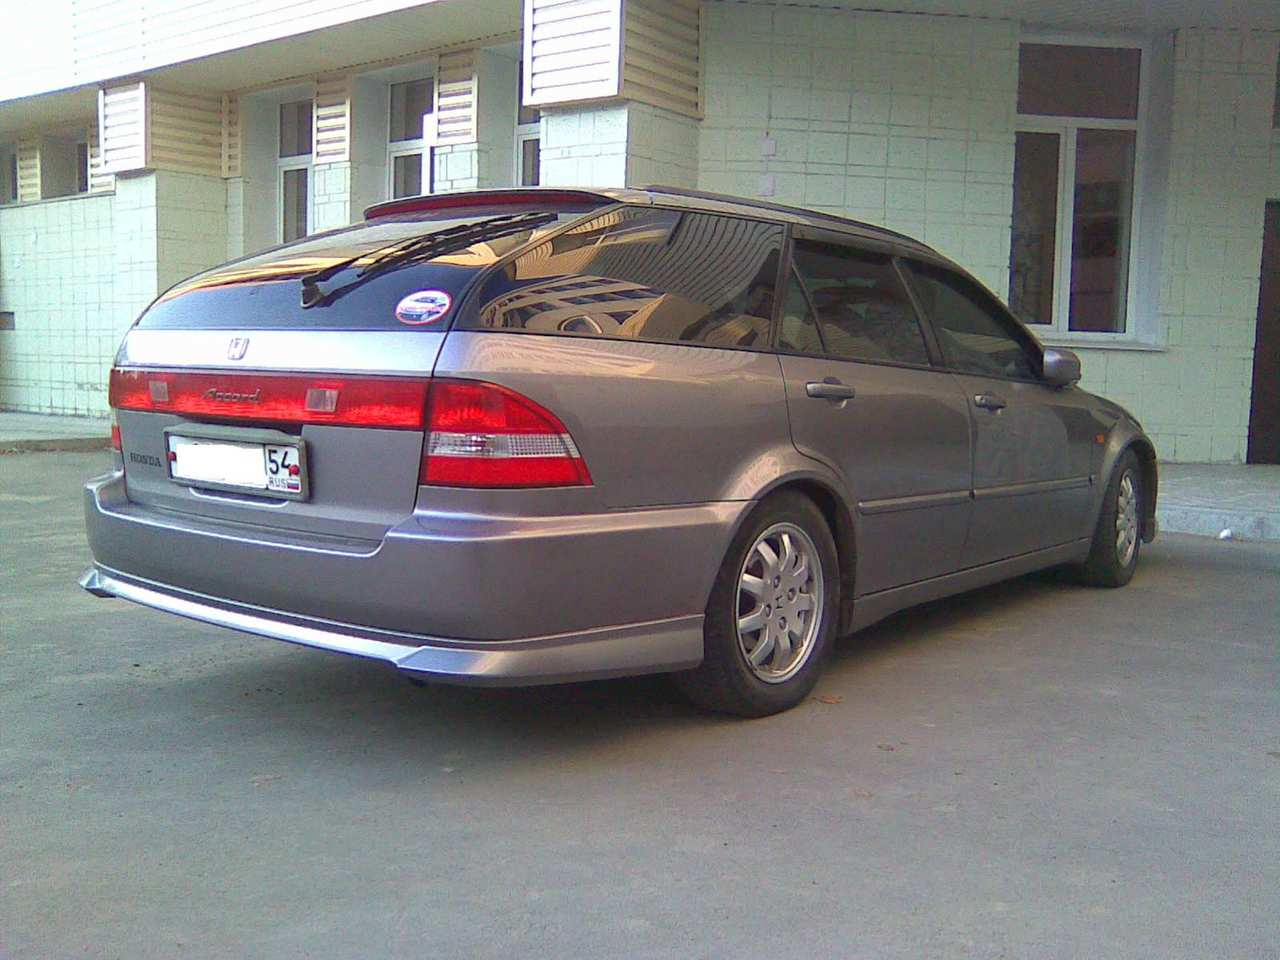 2001 honda accord wagon pictures gasoline ff automatic for sale. Black Bedroom Furniture Sets. Home Design Ideas